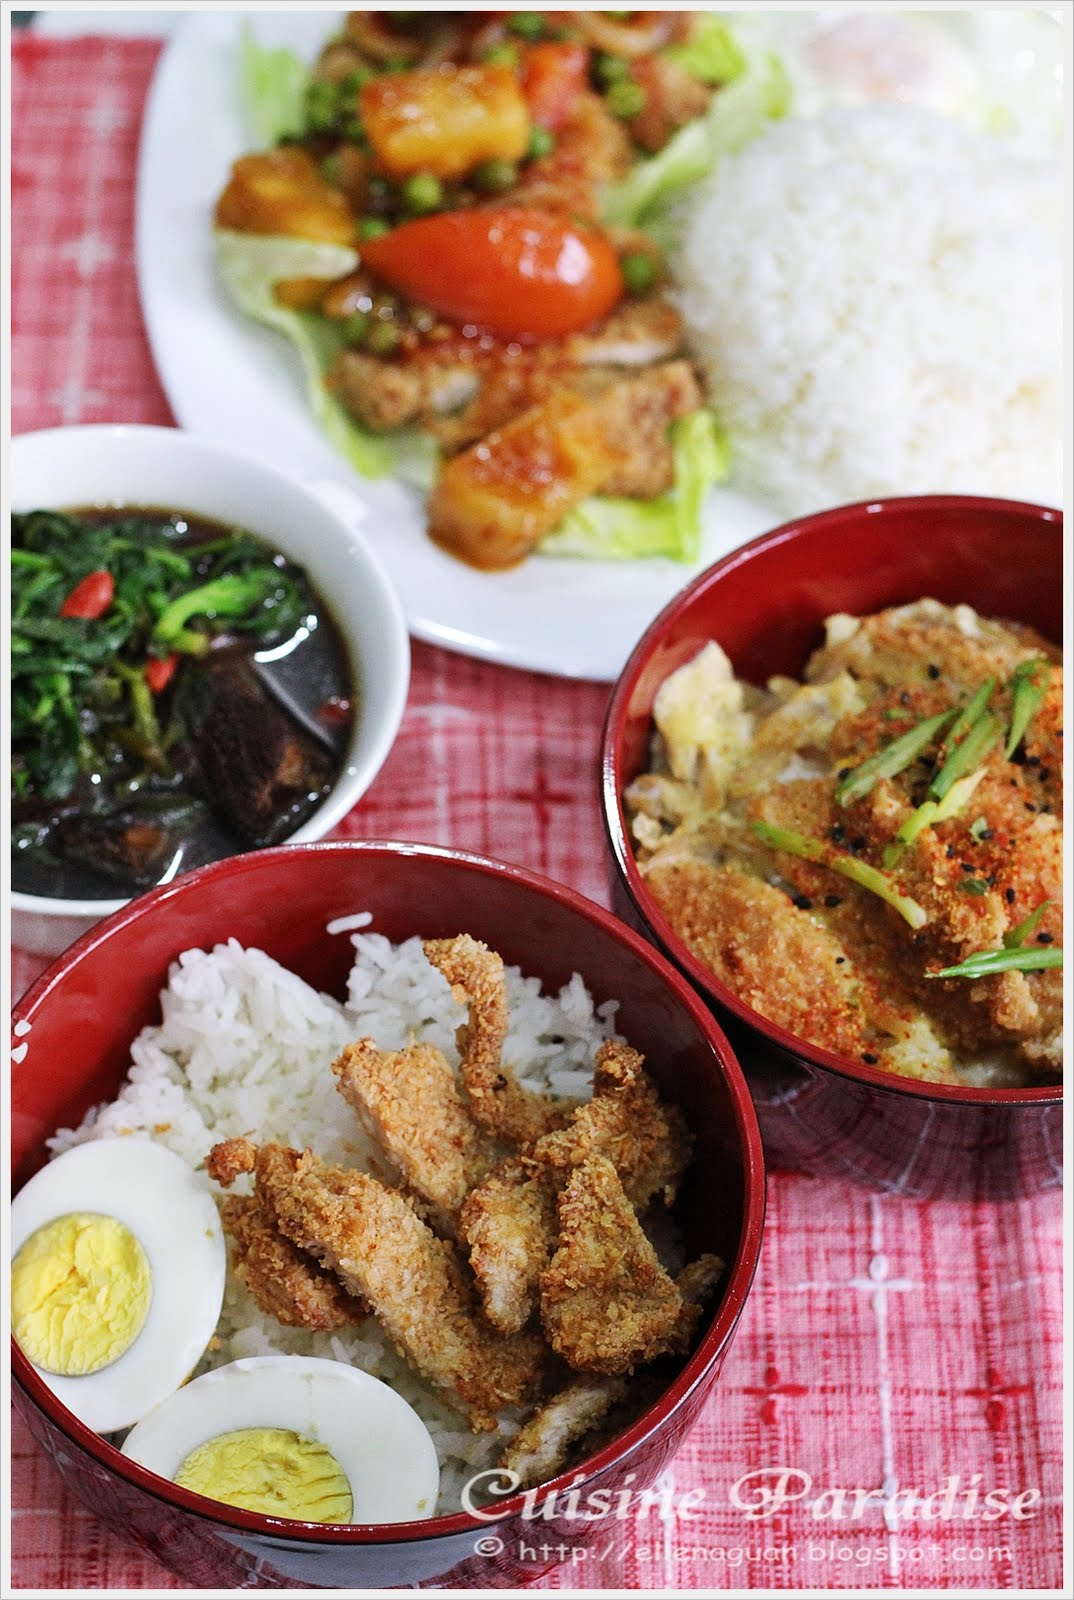 cuisine paradise | singapore food blog | recipes, reviews and